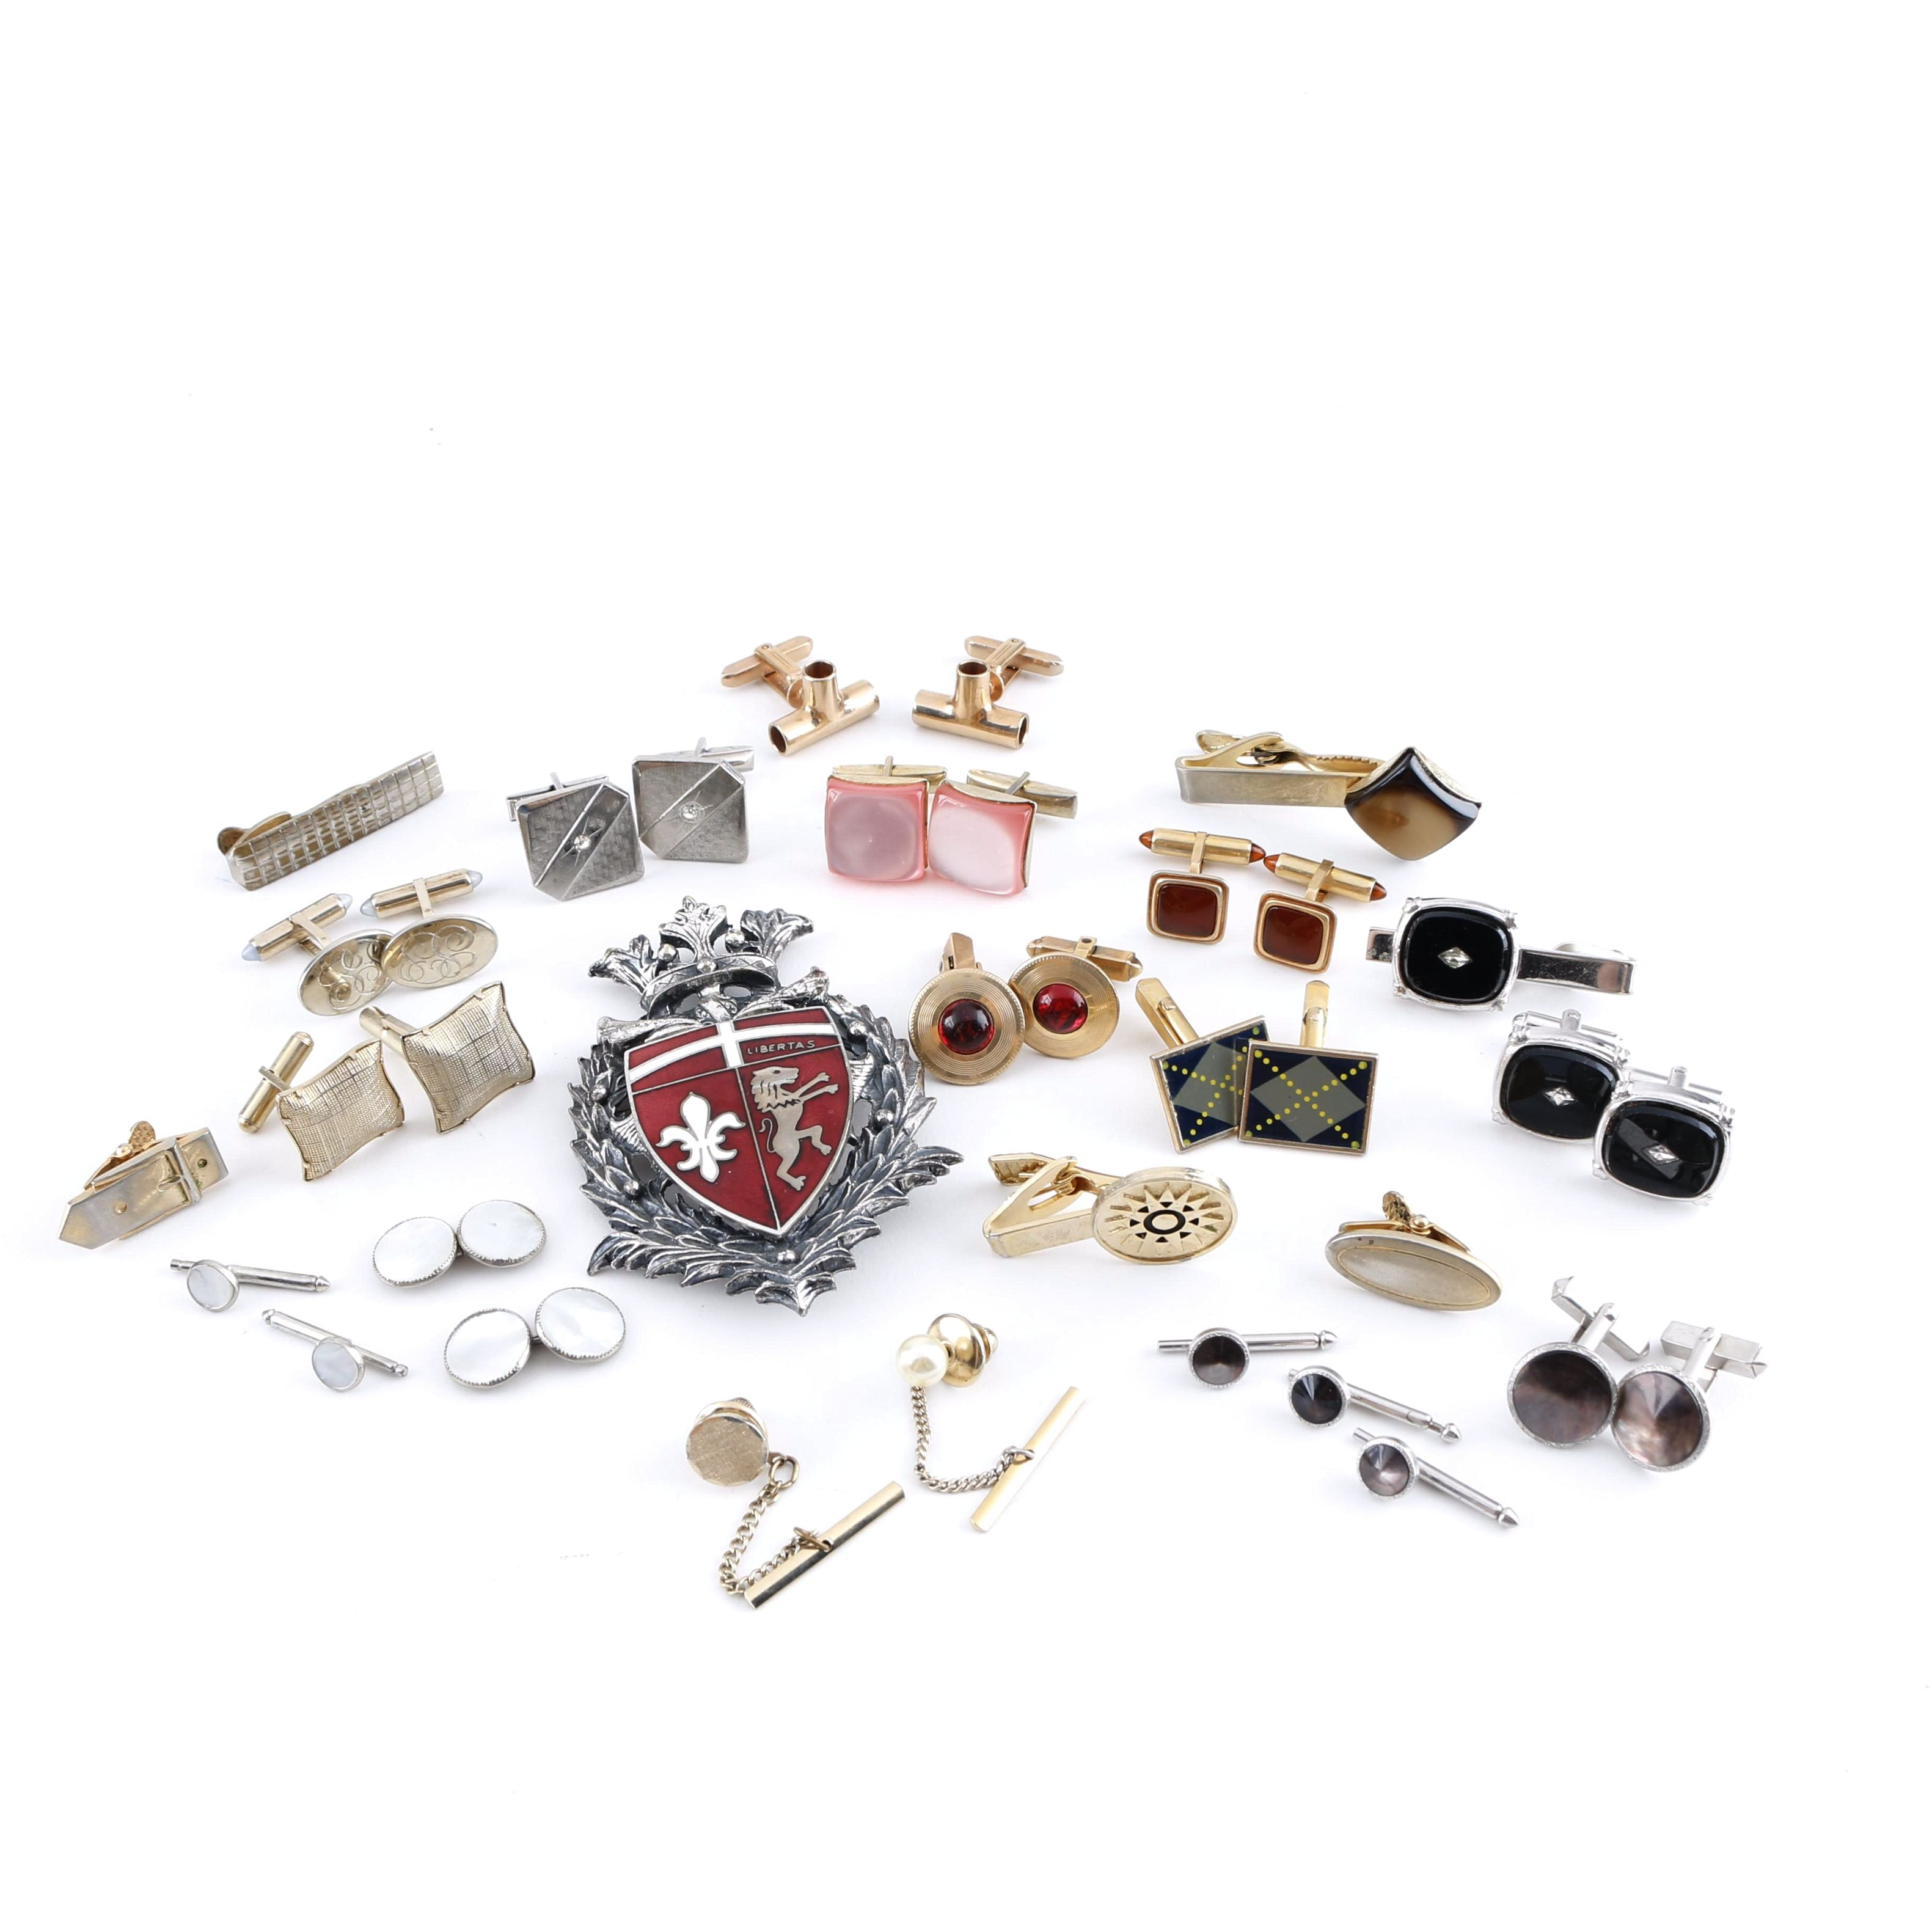 Assortment of Cufflinks and Other Accessories